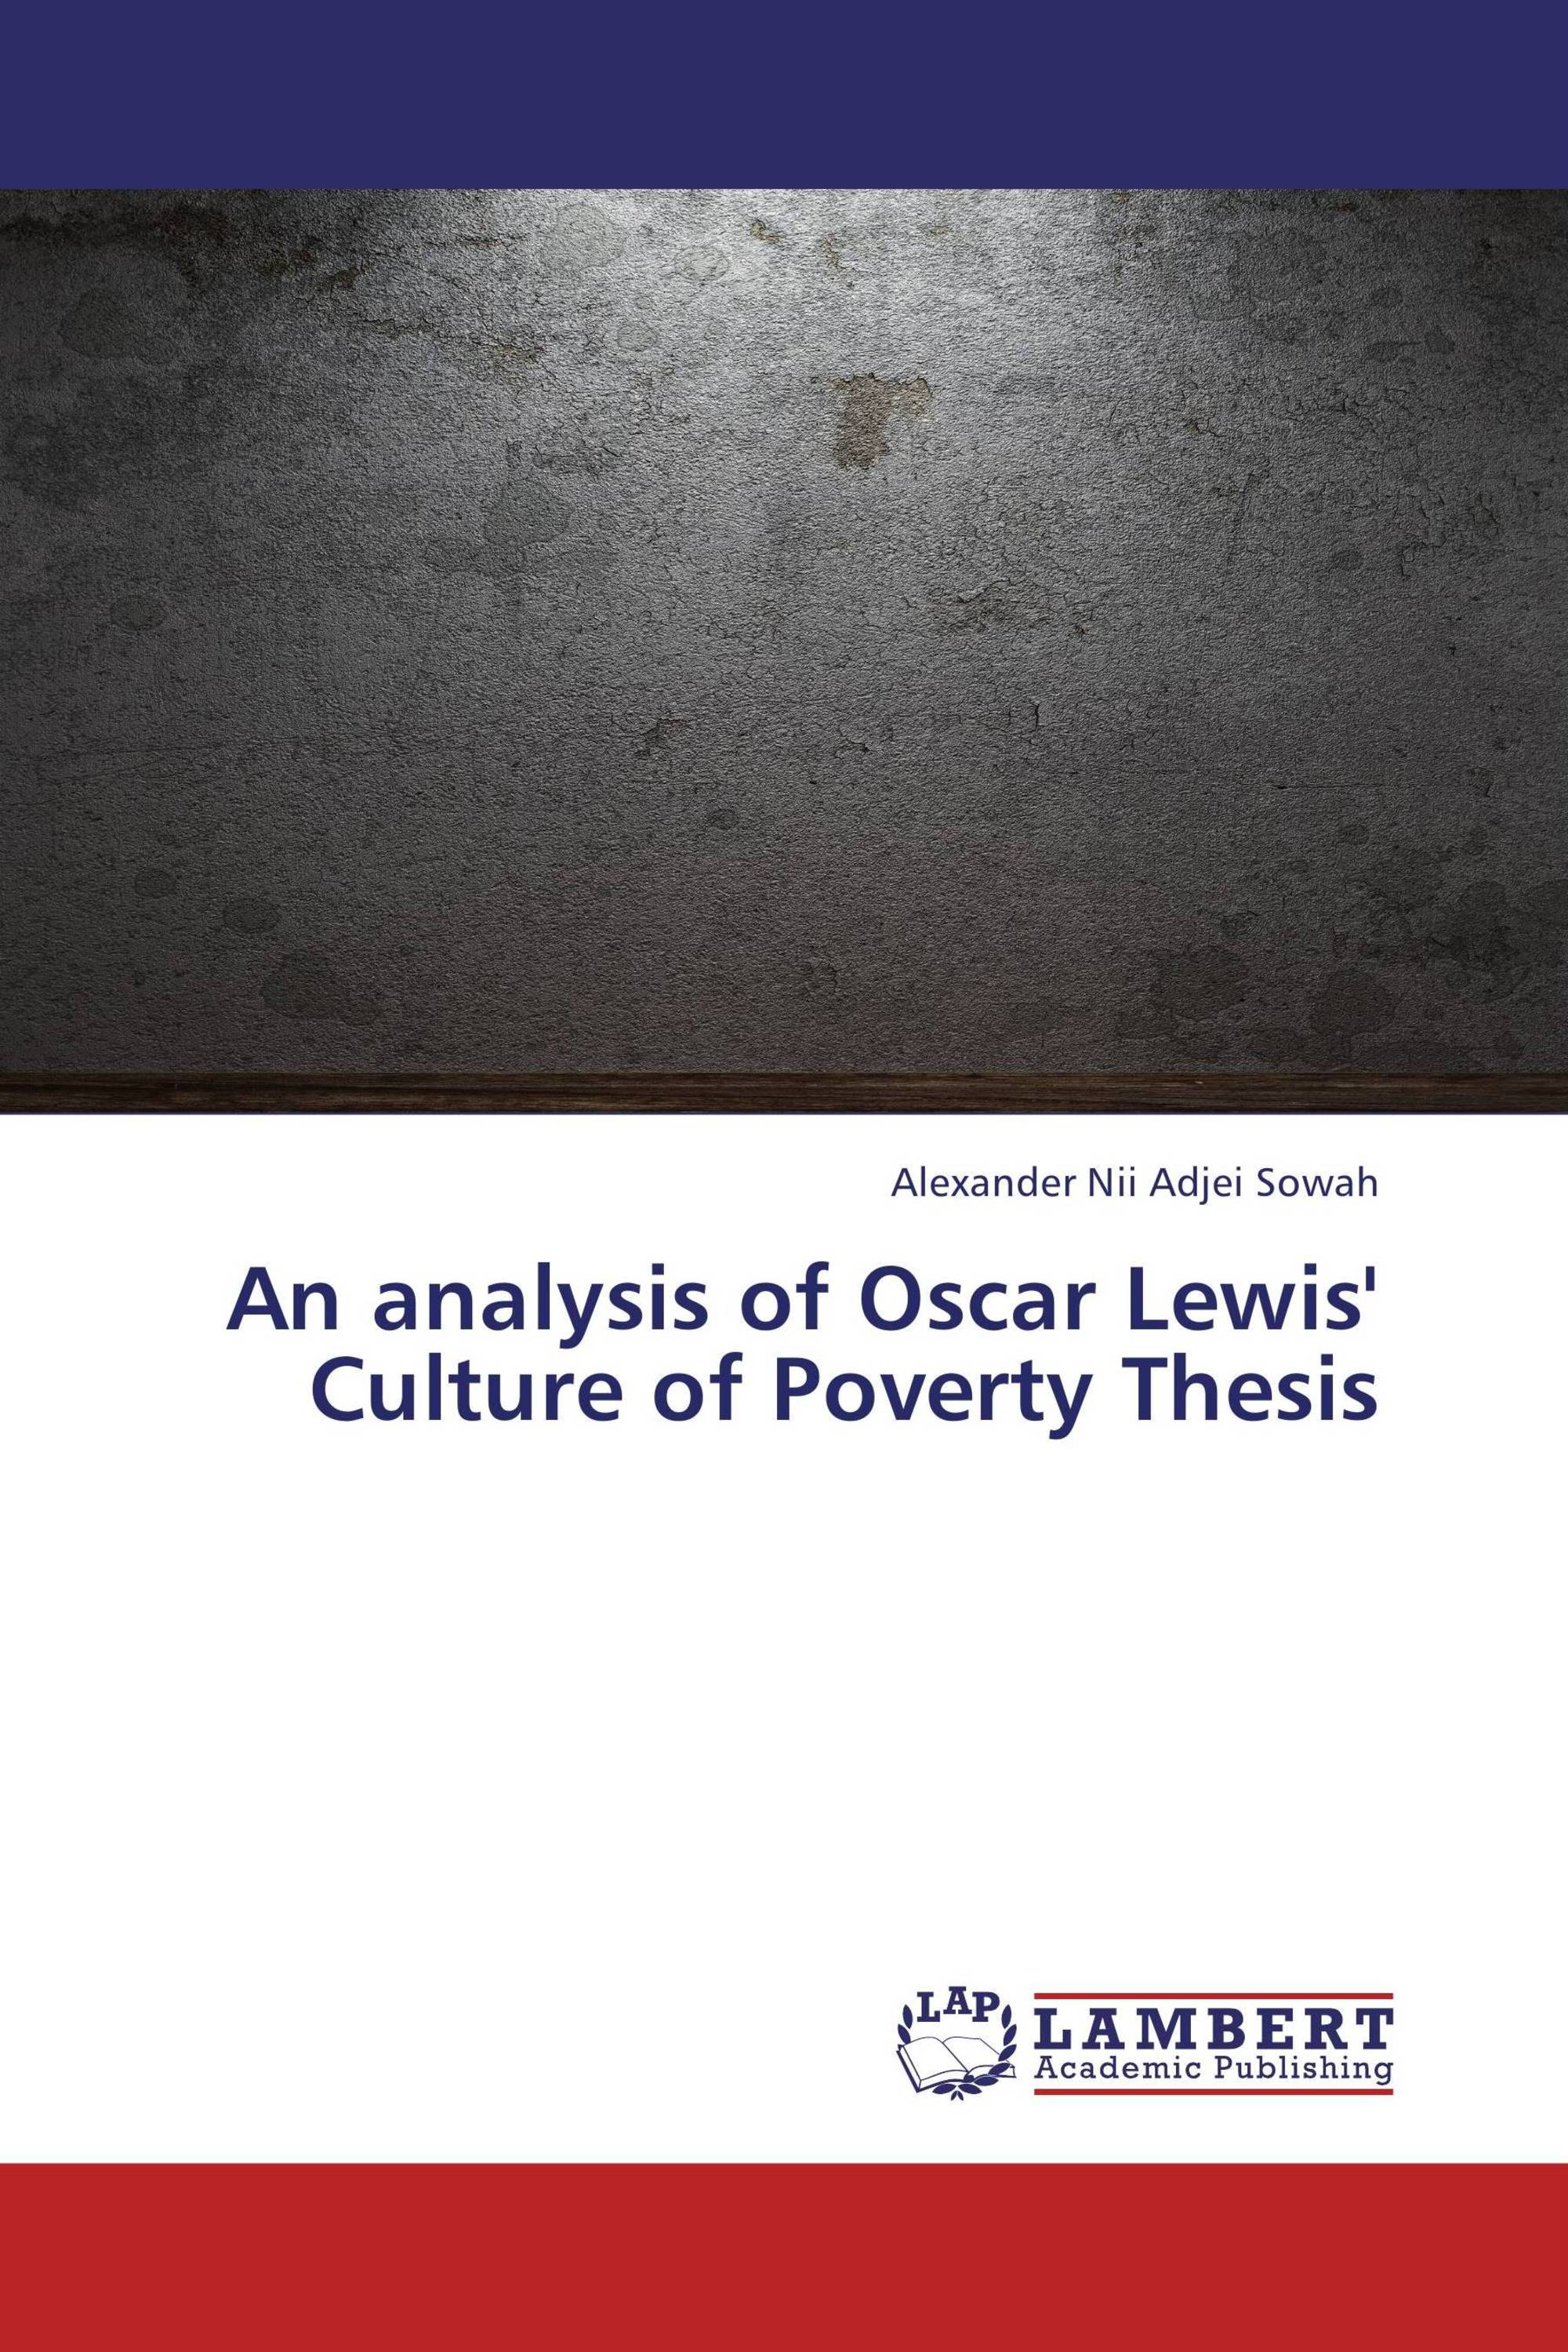 an analysis of oscar lewis culture of poverty thesis 978 3 659 an analysis of oscar lewis culture of poverty thesis